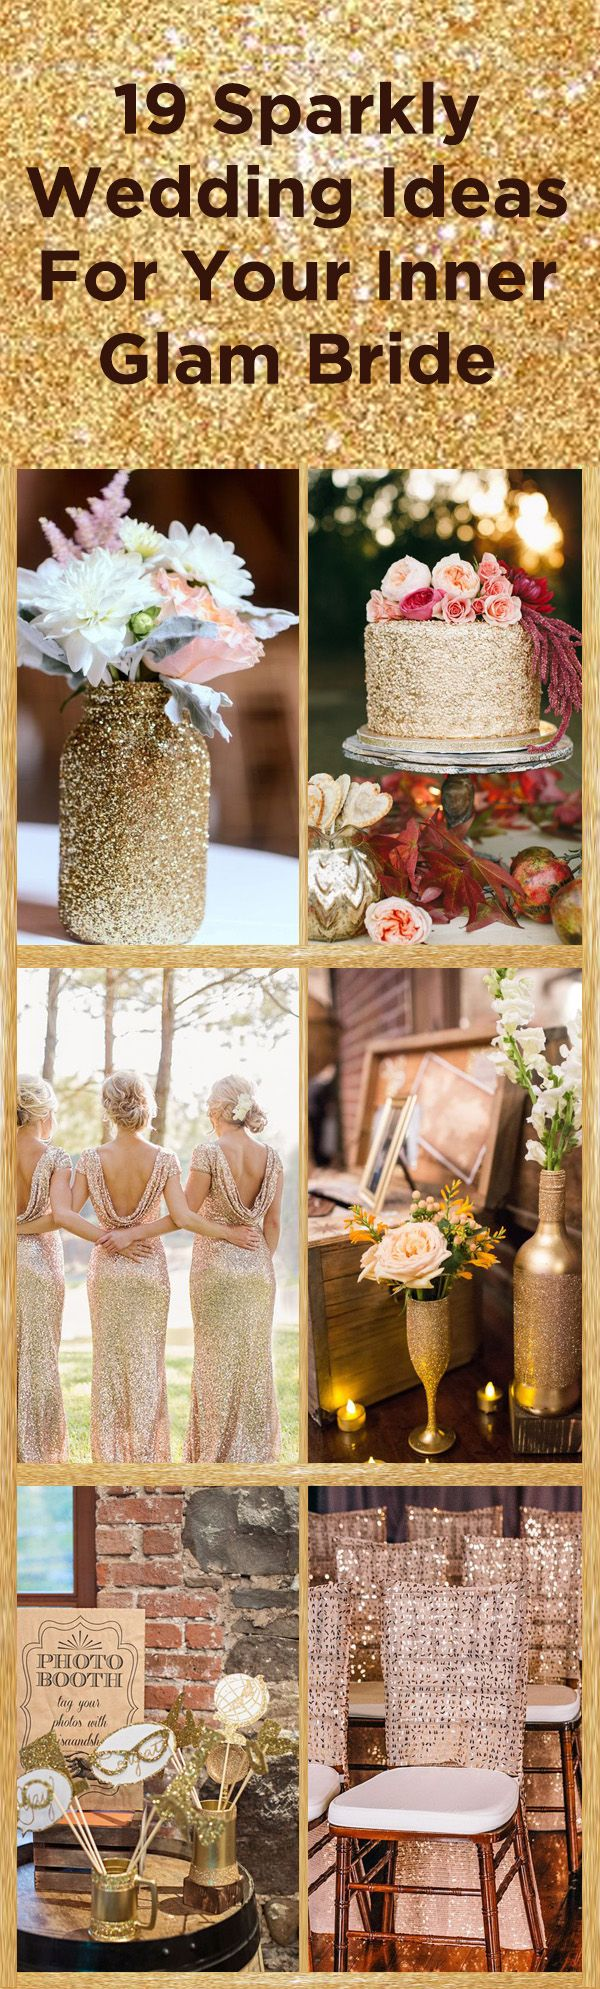 Dazzle on your wedding day with these incredible sparkly wedding ideas sure to please your inner glam bride!